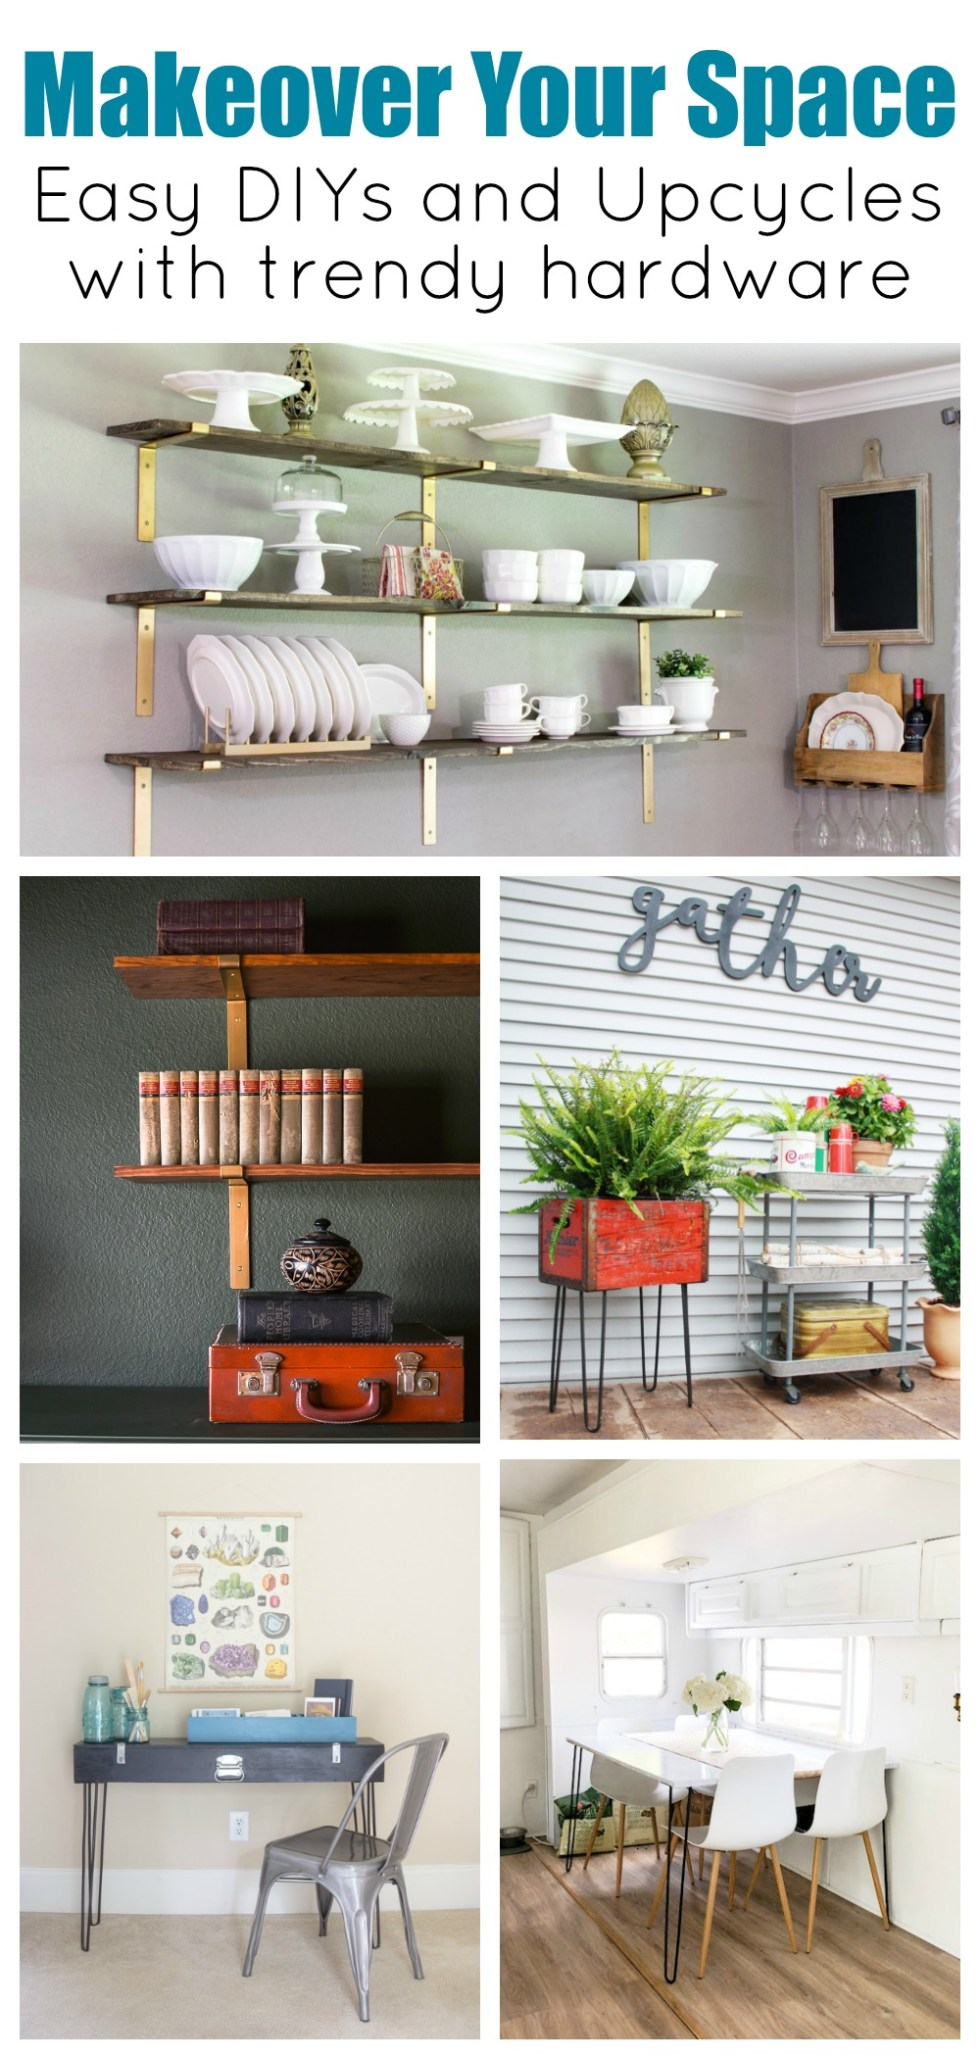 DIYs and Upcycle projects that feature trendy hardware trends like metal brackets and hairpin legs